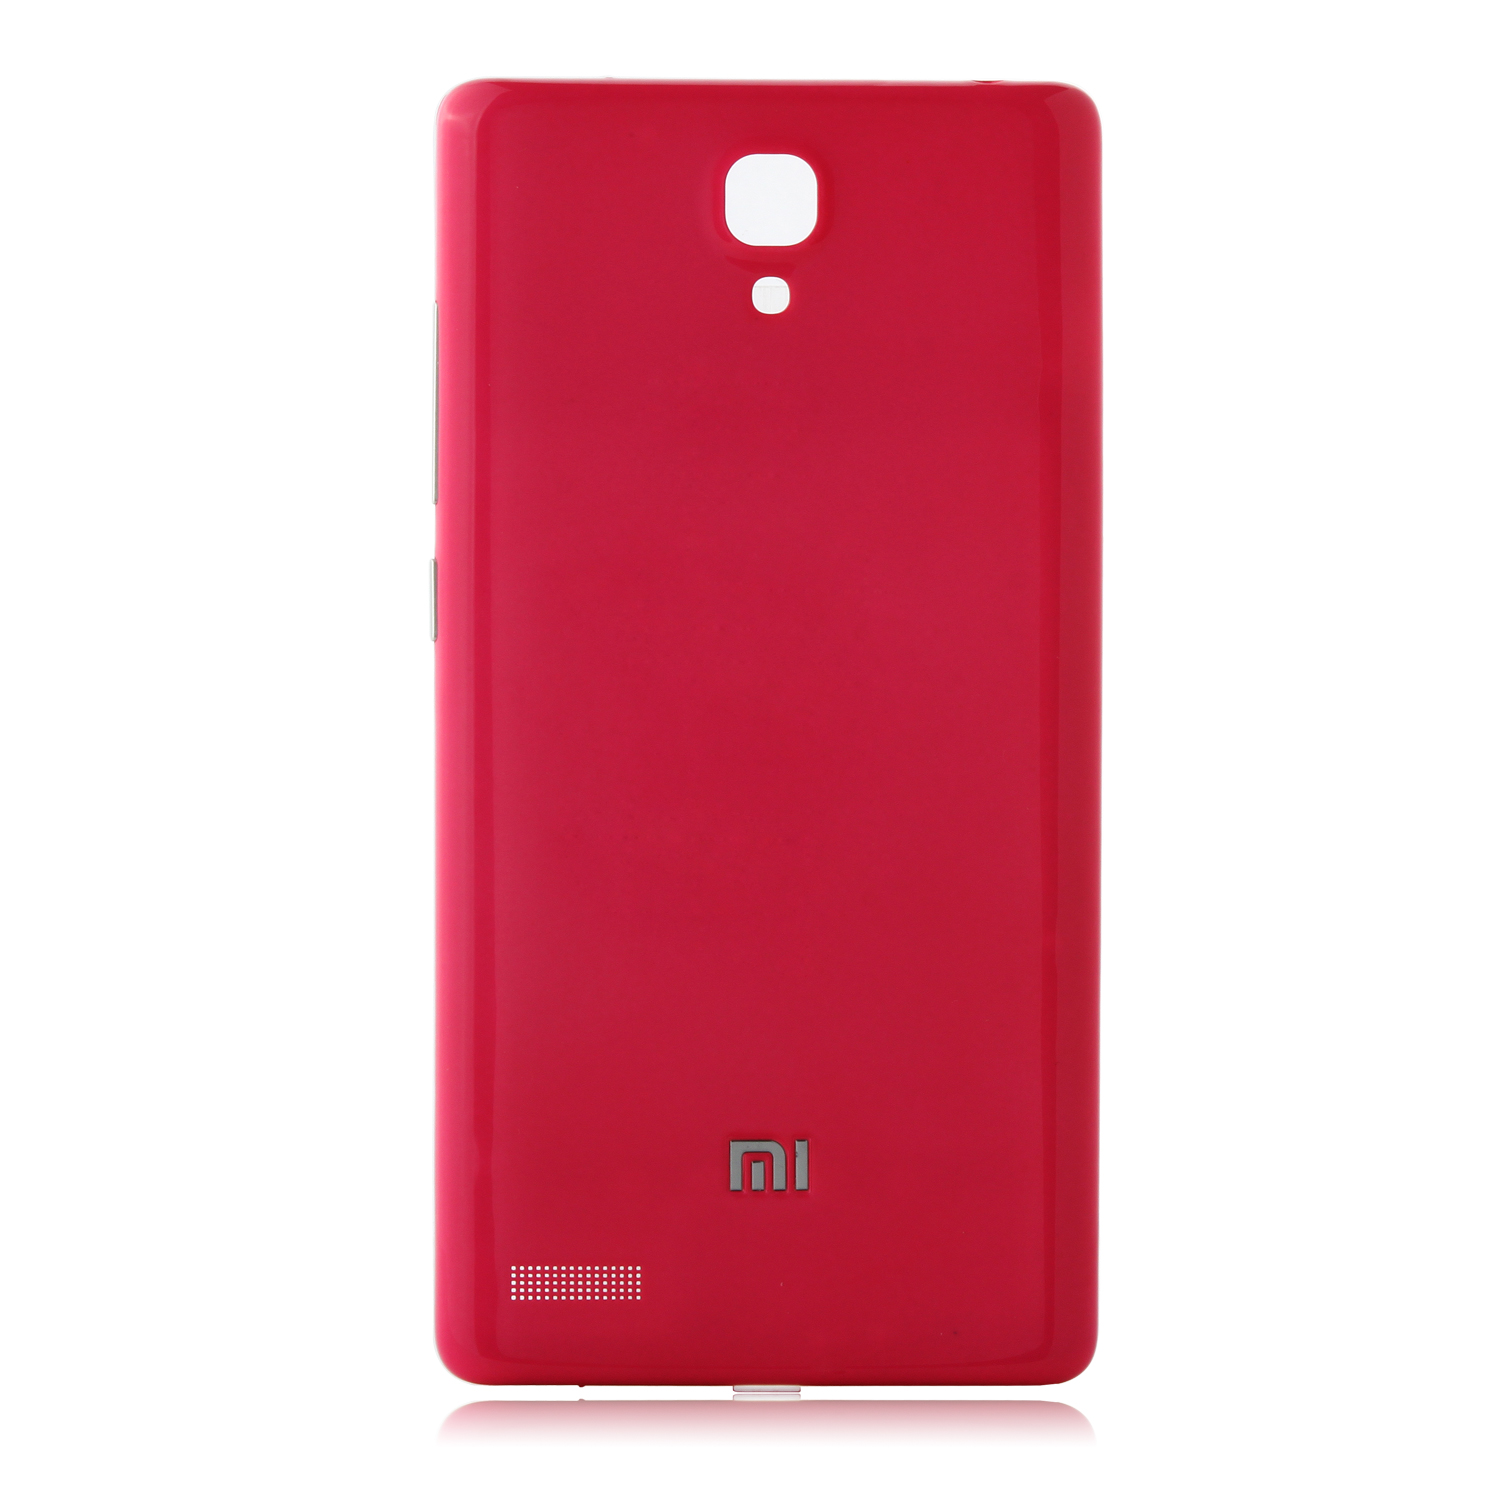 Battery Cover Back Case for XIAOMI Redmi Note Smartphone Rose